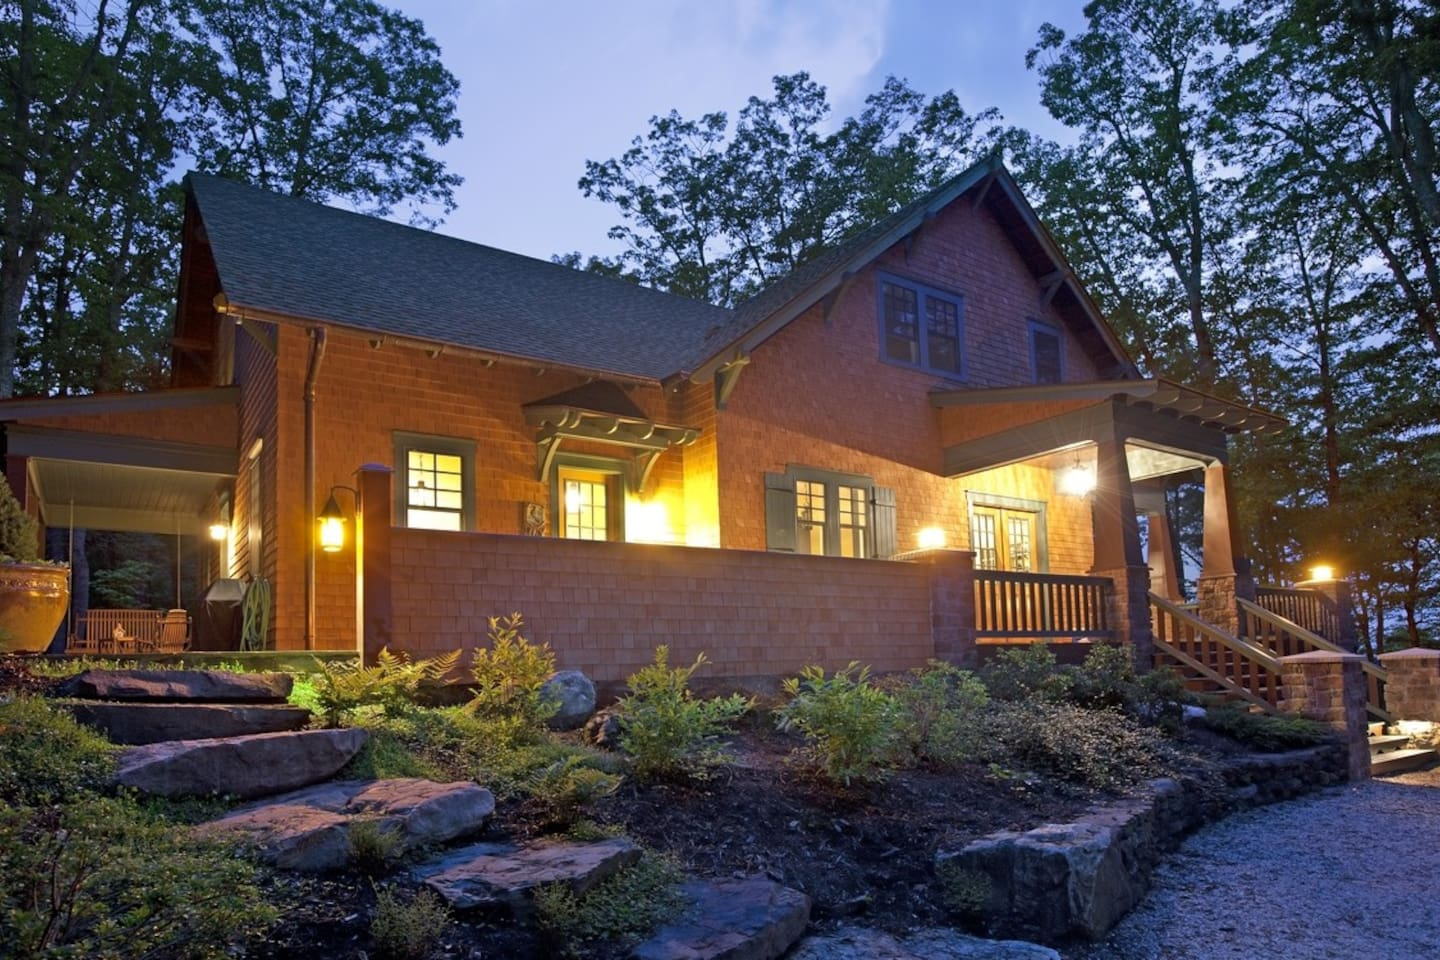 Breathtaking Arts and Crafts home nestled in the woods overlooking Warm Springs.